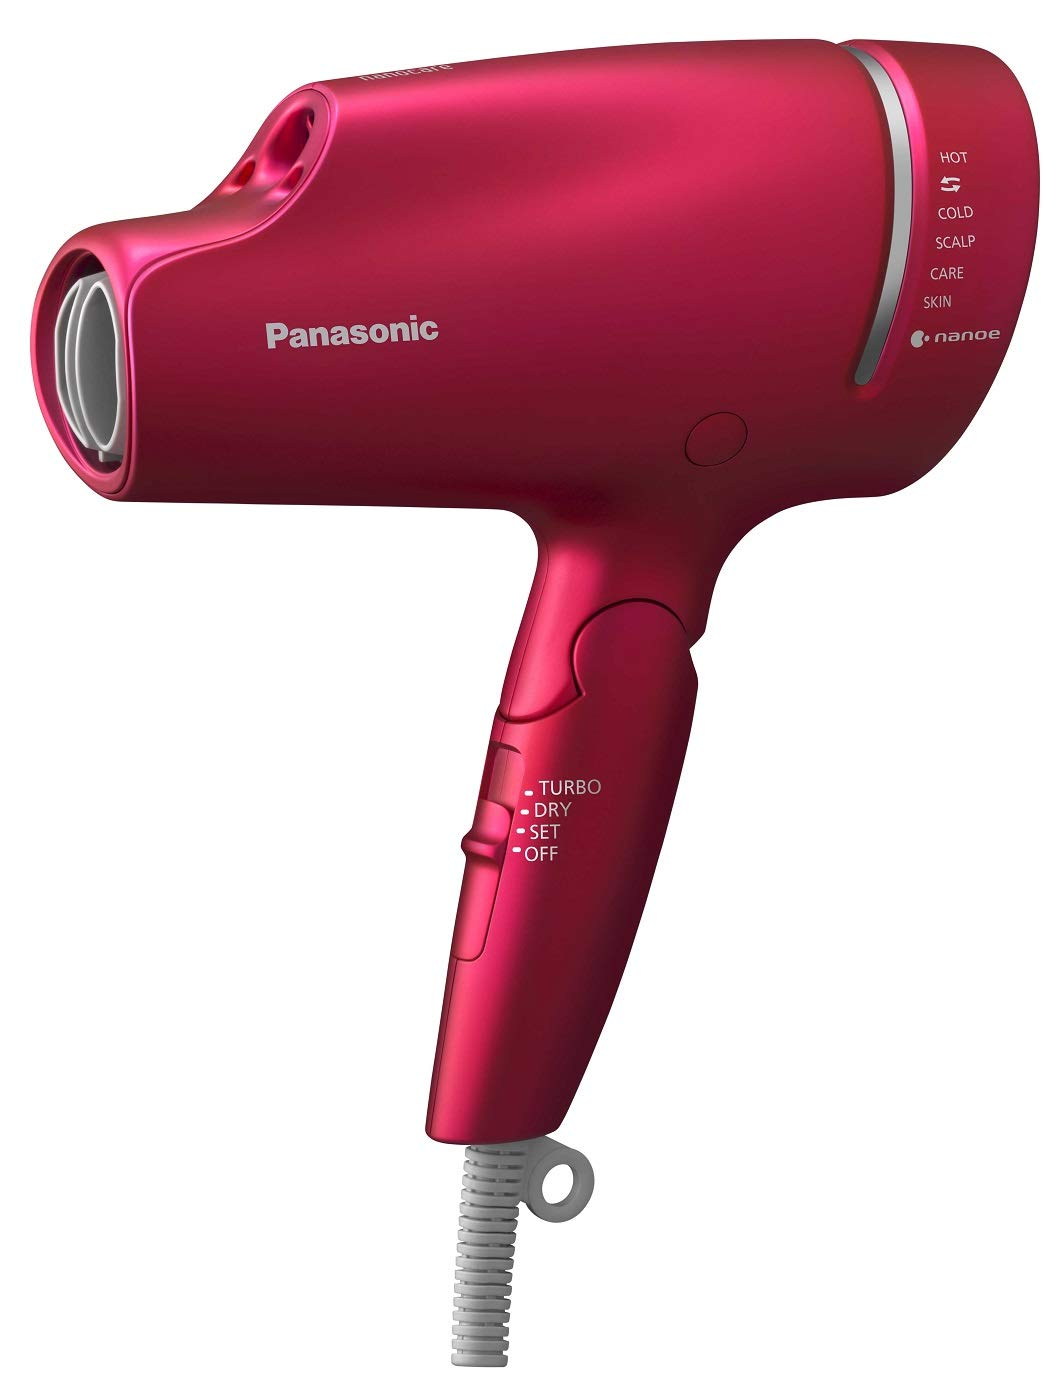 Panasonic EH-NA9A-RP hair dryer nano care rouge pink 1200W Japan Domestic genuine products